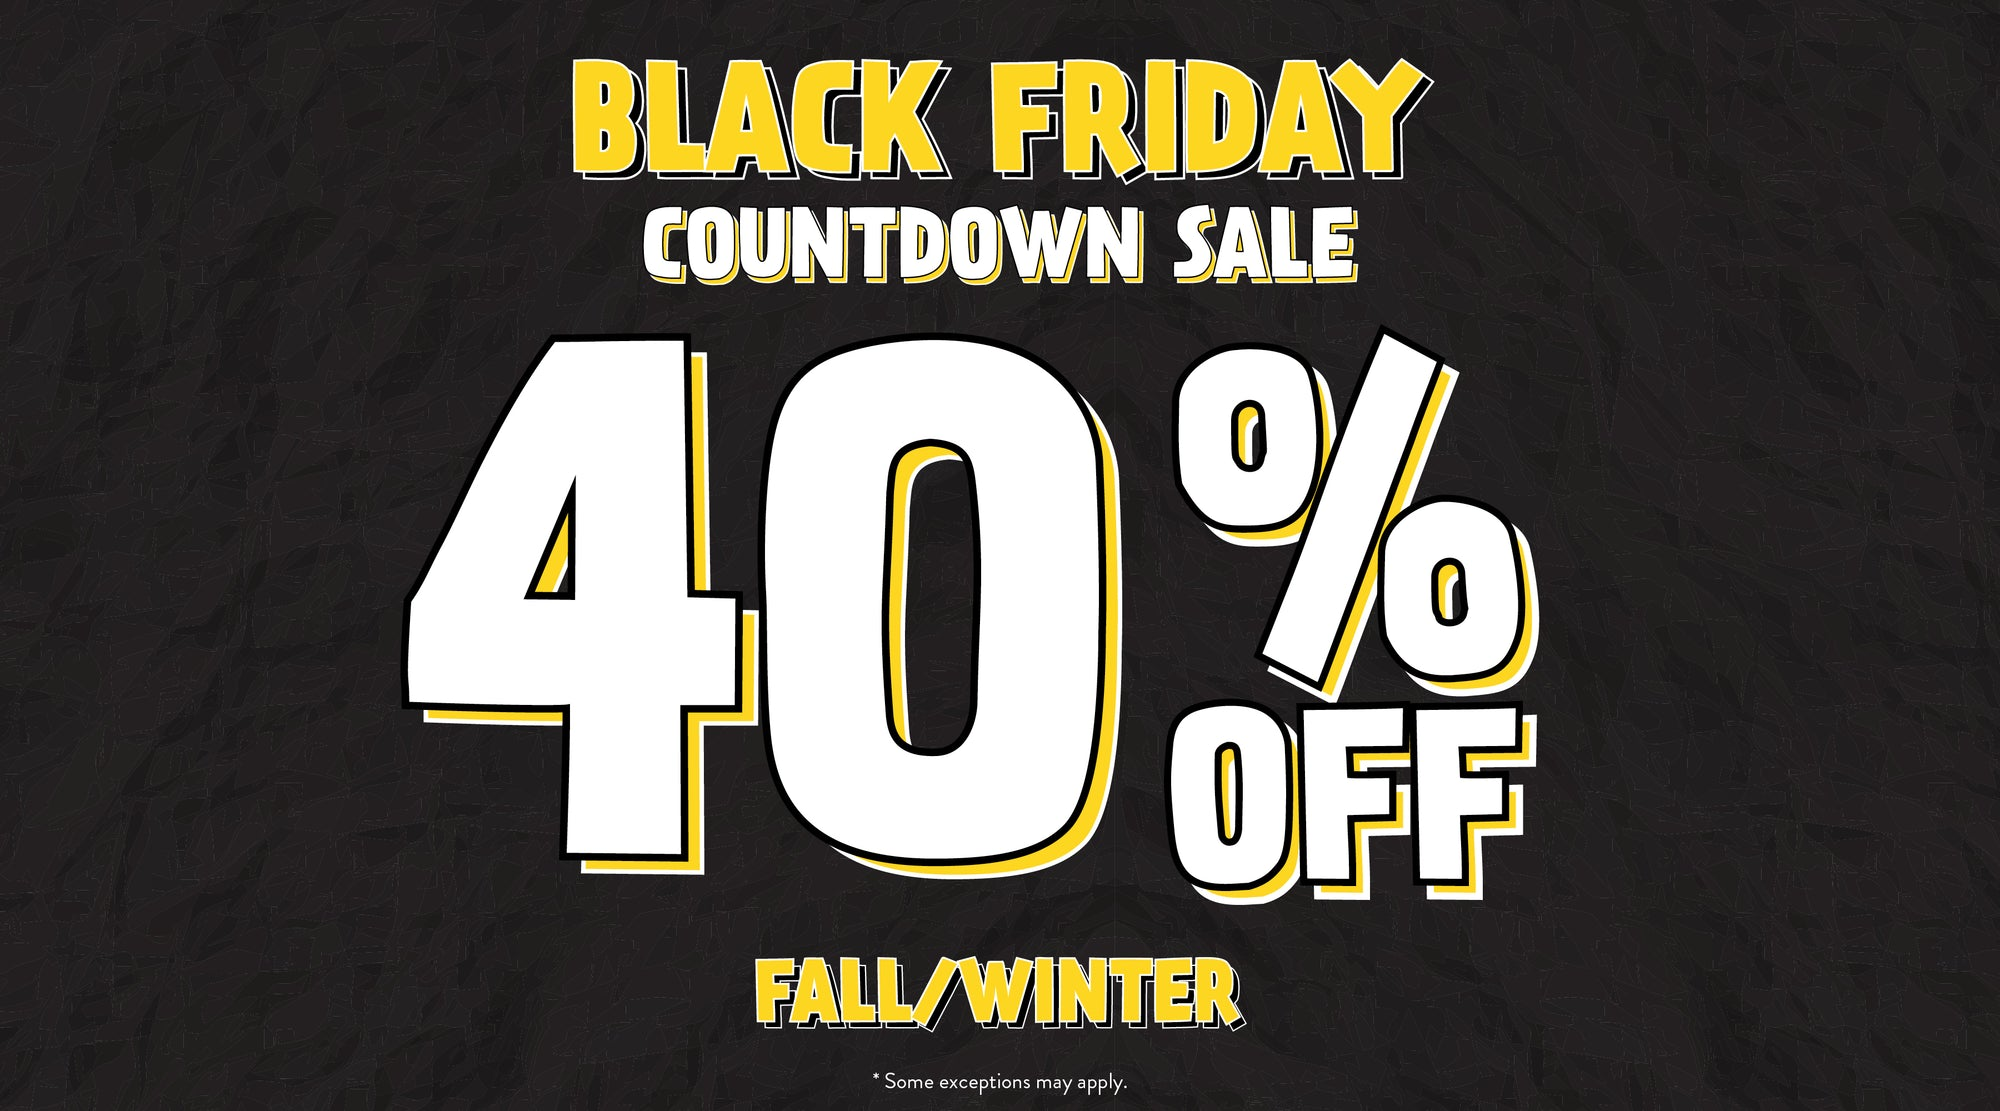 Black Friday Countdown - 40% Off